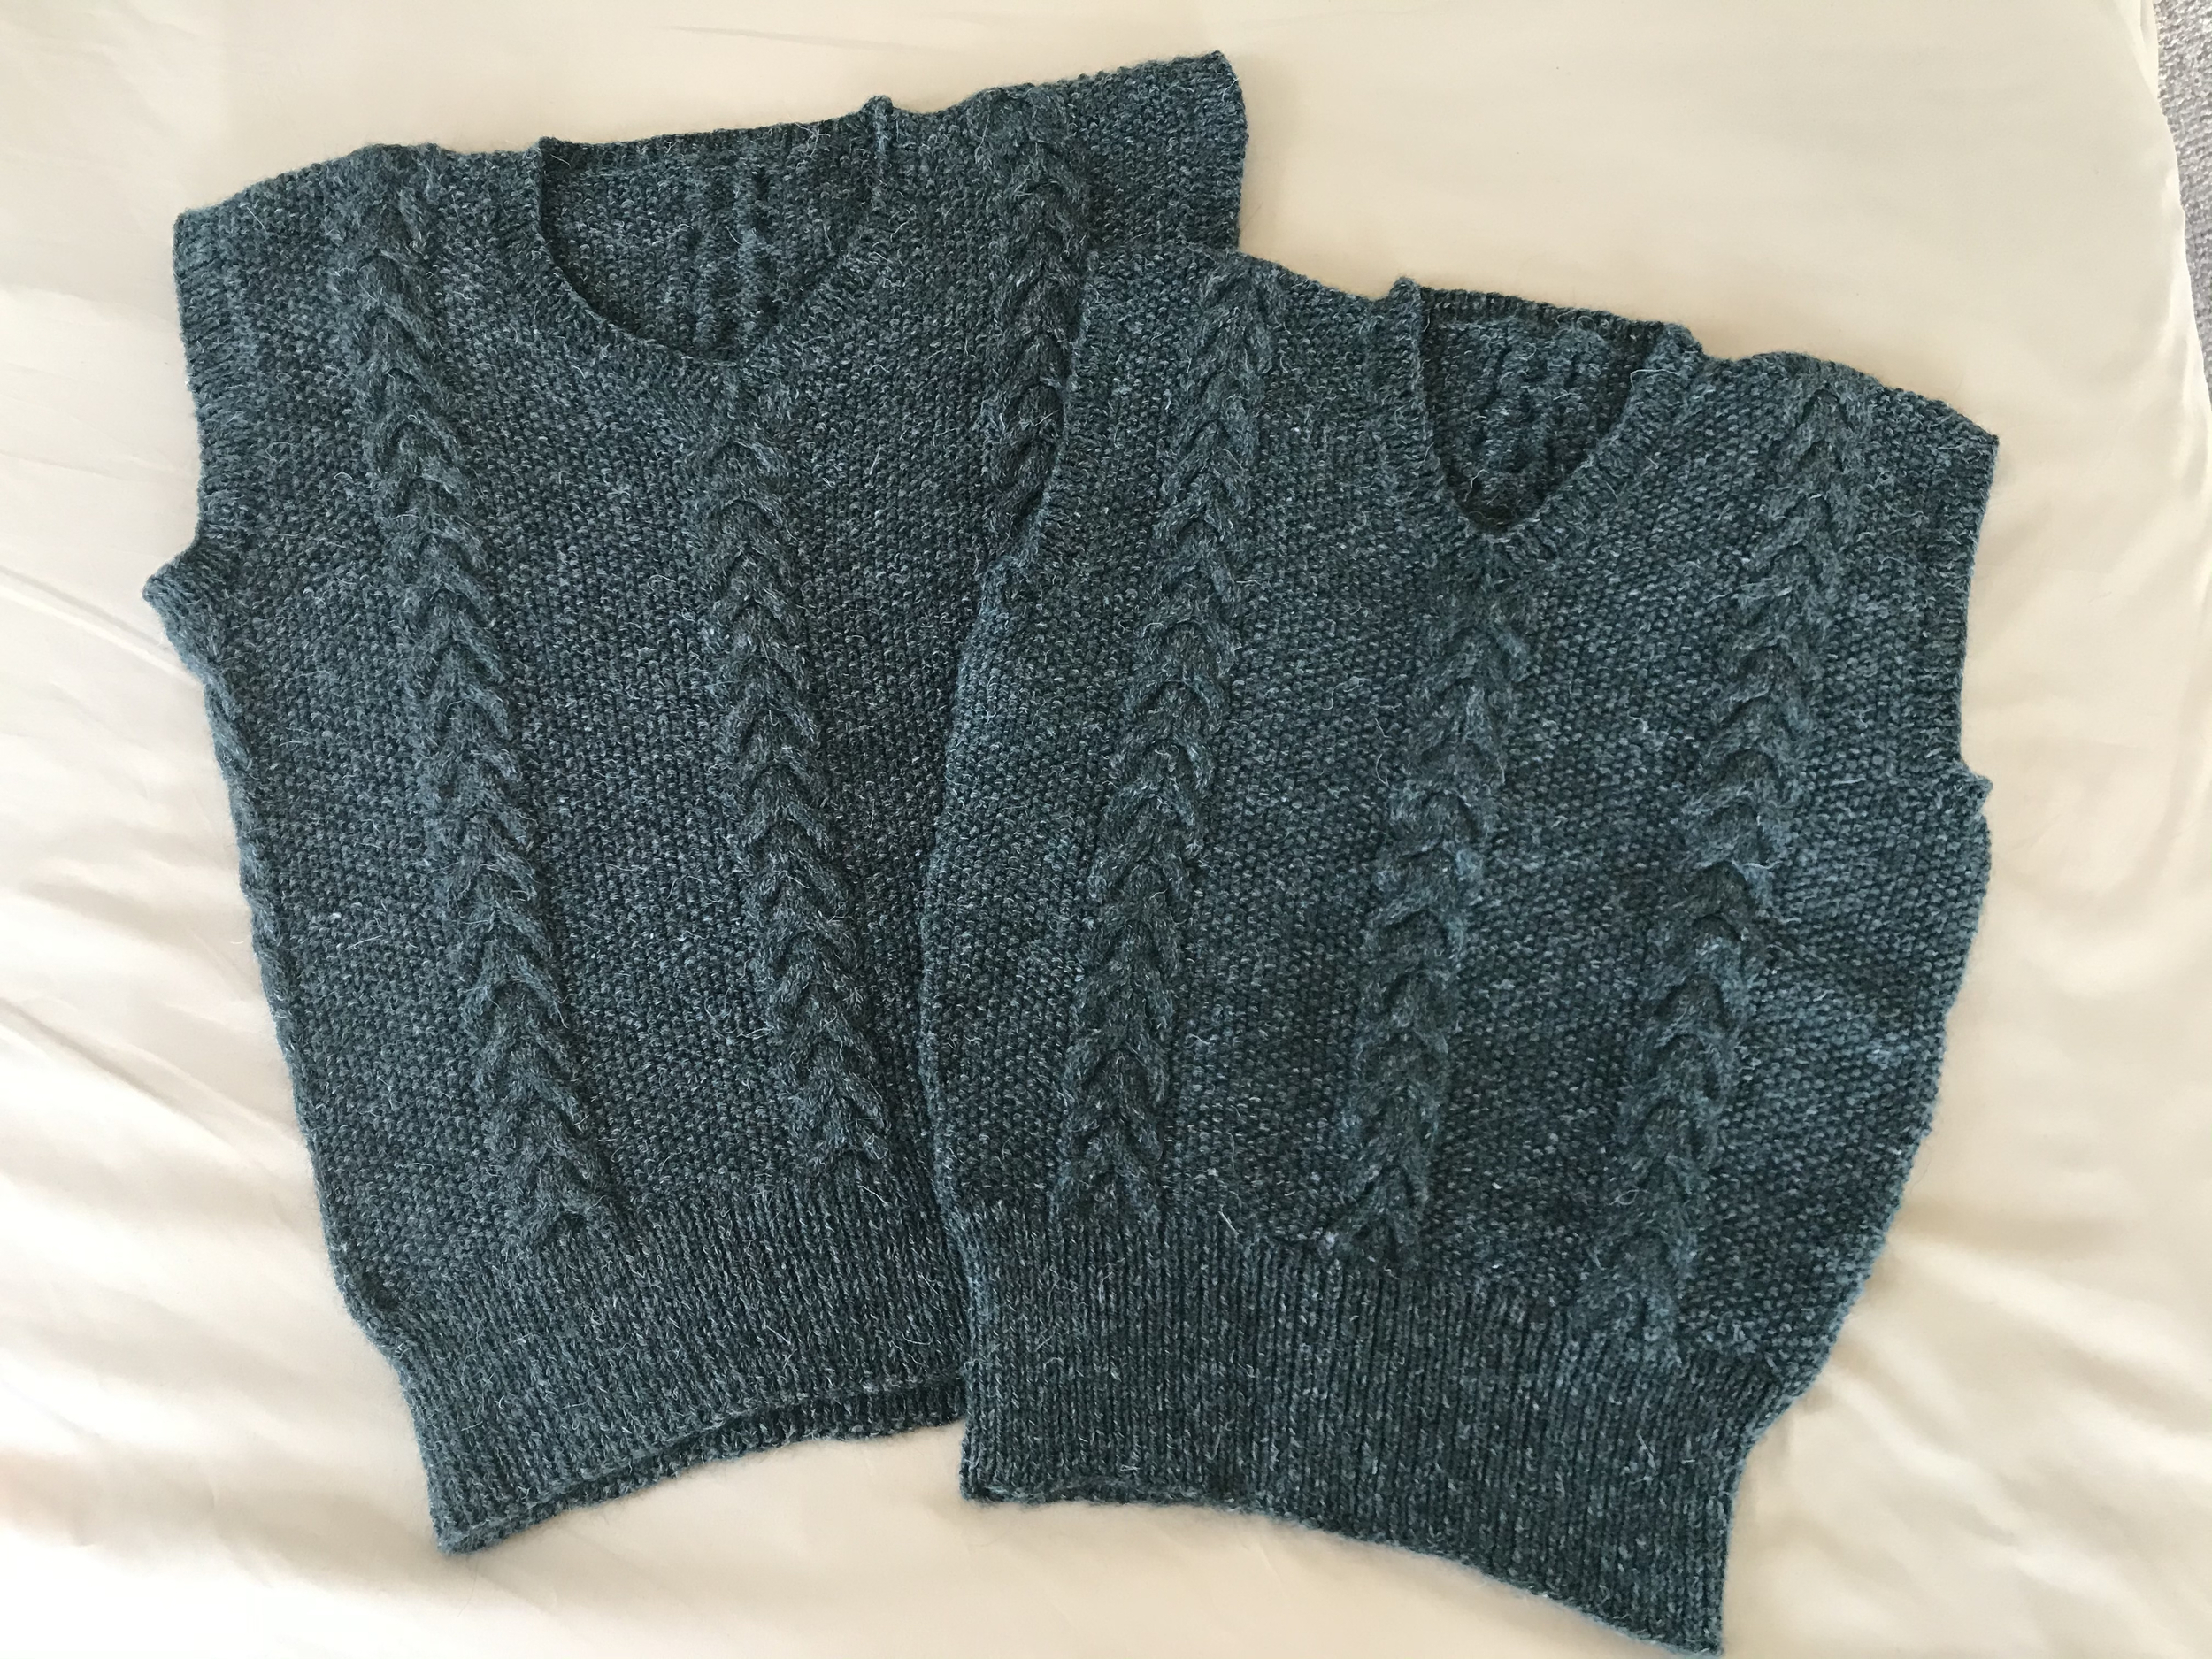 Knitted Vests from the Center for Knit and Crochet crowdsourced collection